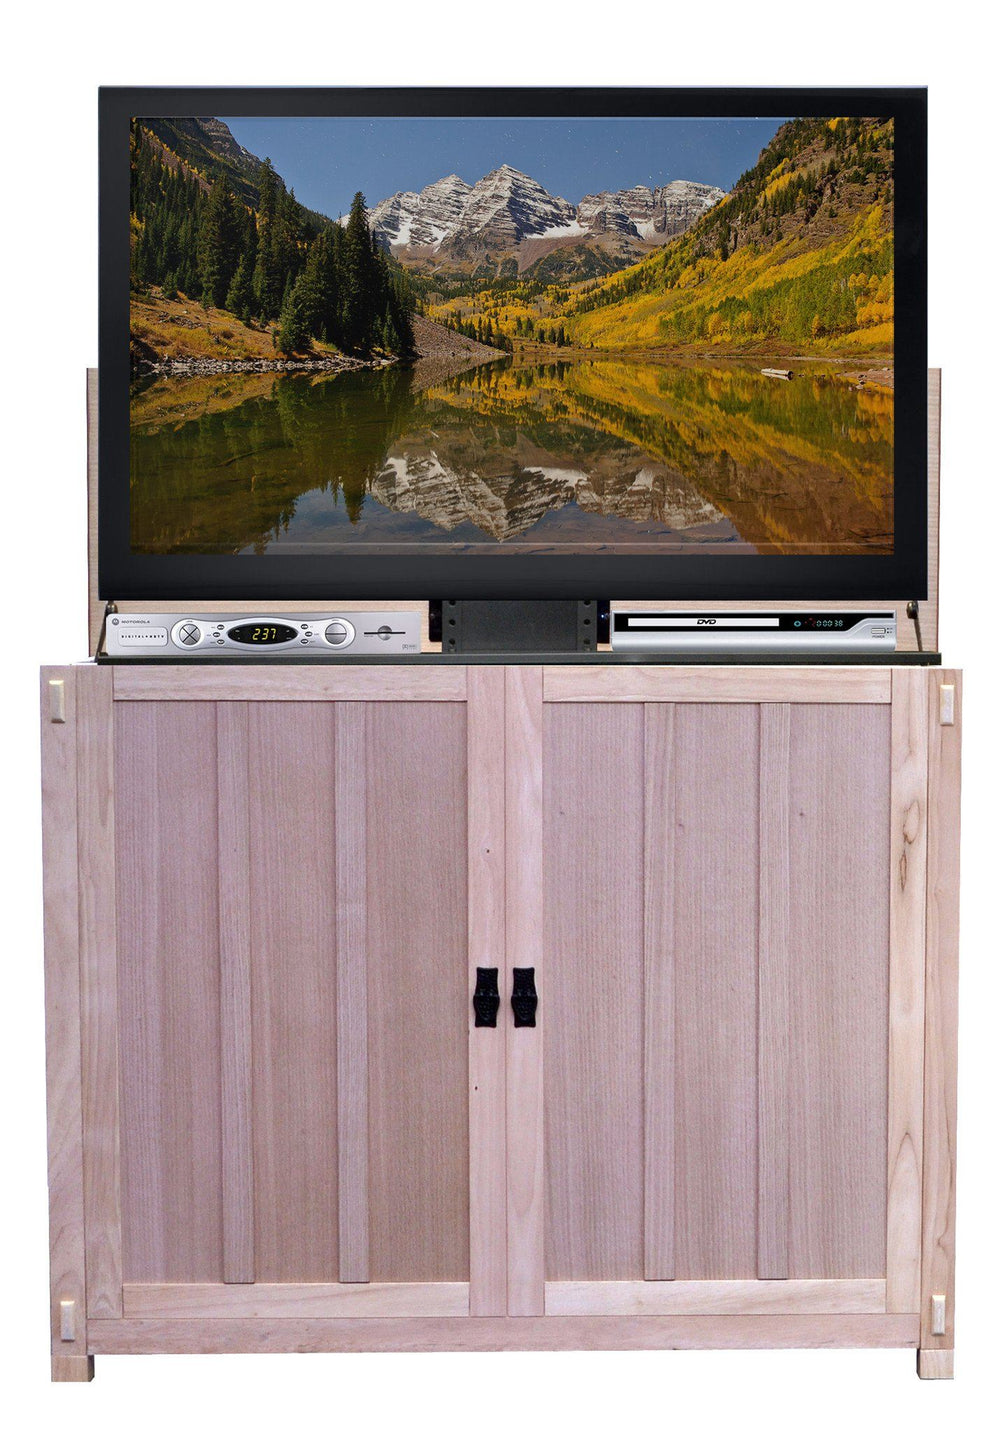 "Touchstone Elevate - Oak Unfinished Lift Cabinets For Up To 42"" Flat Screen Tv'S Tv Lift Cabinets Touchstone"